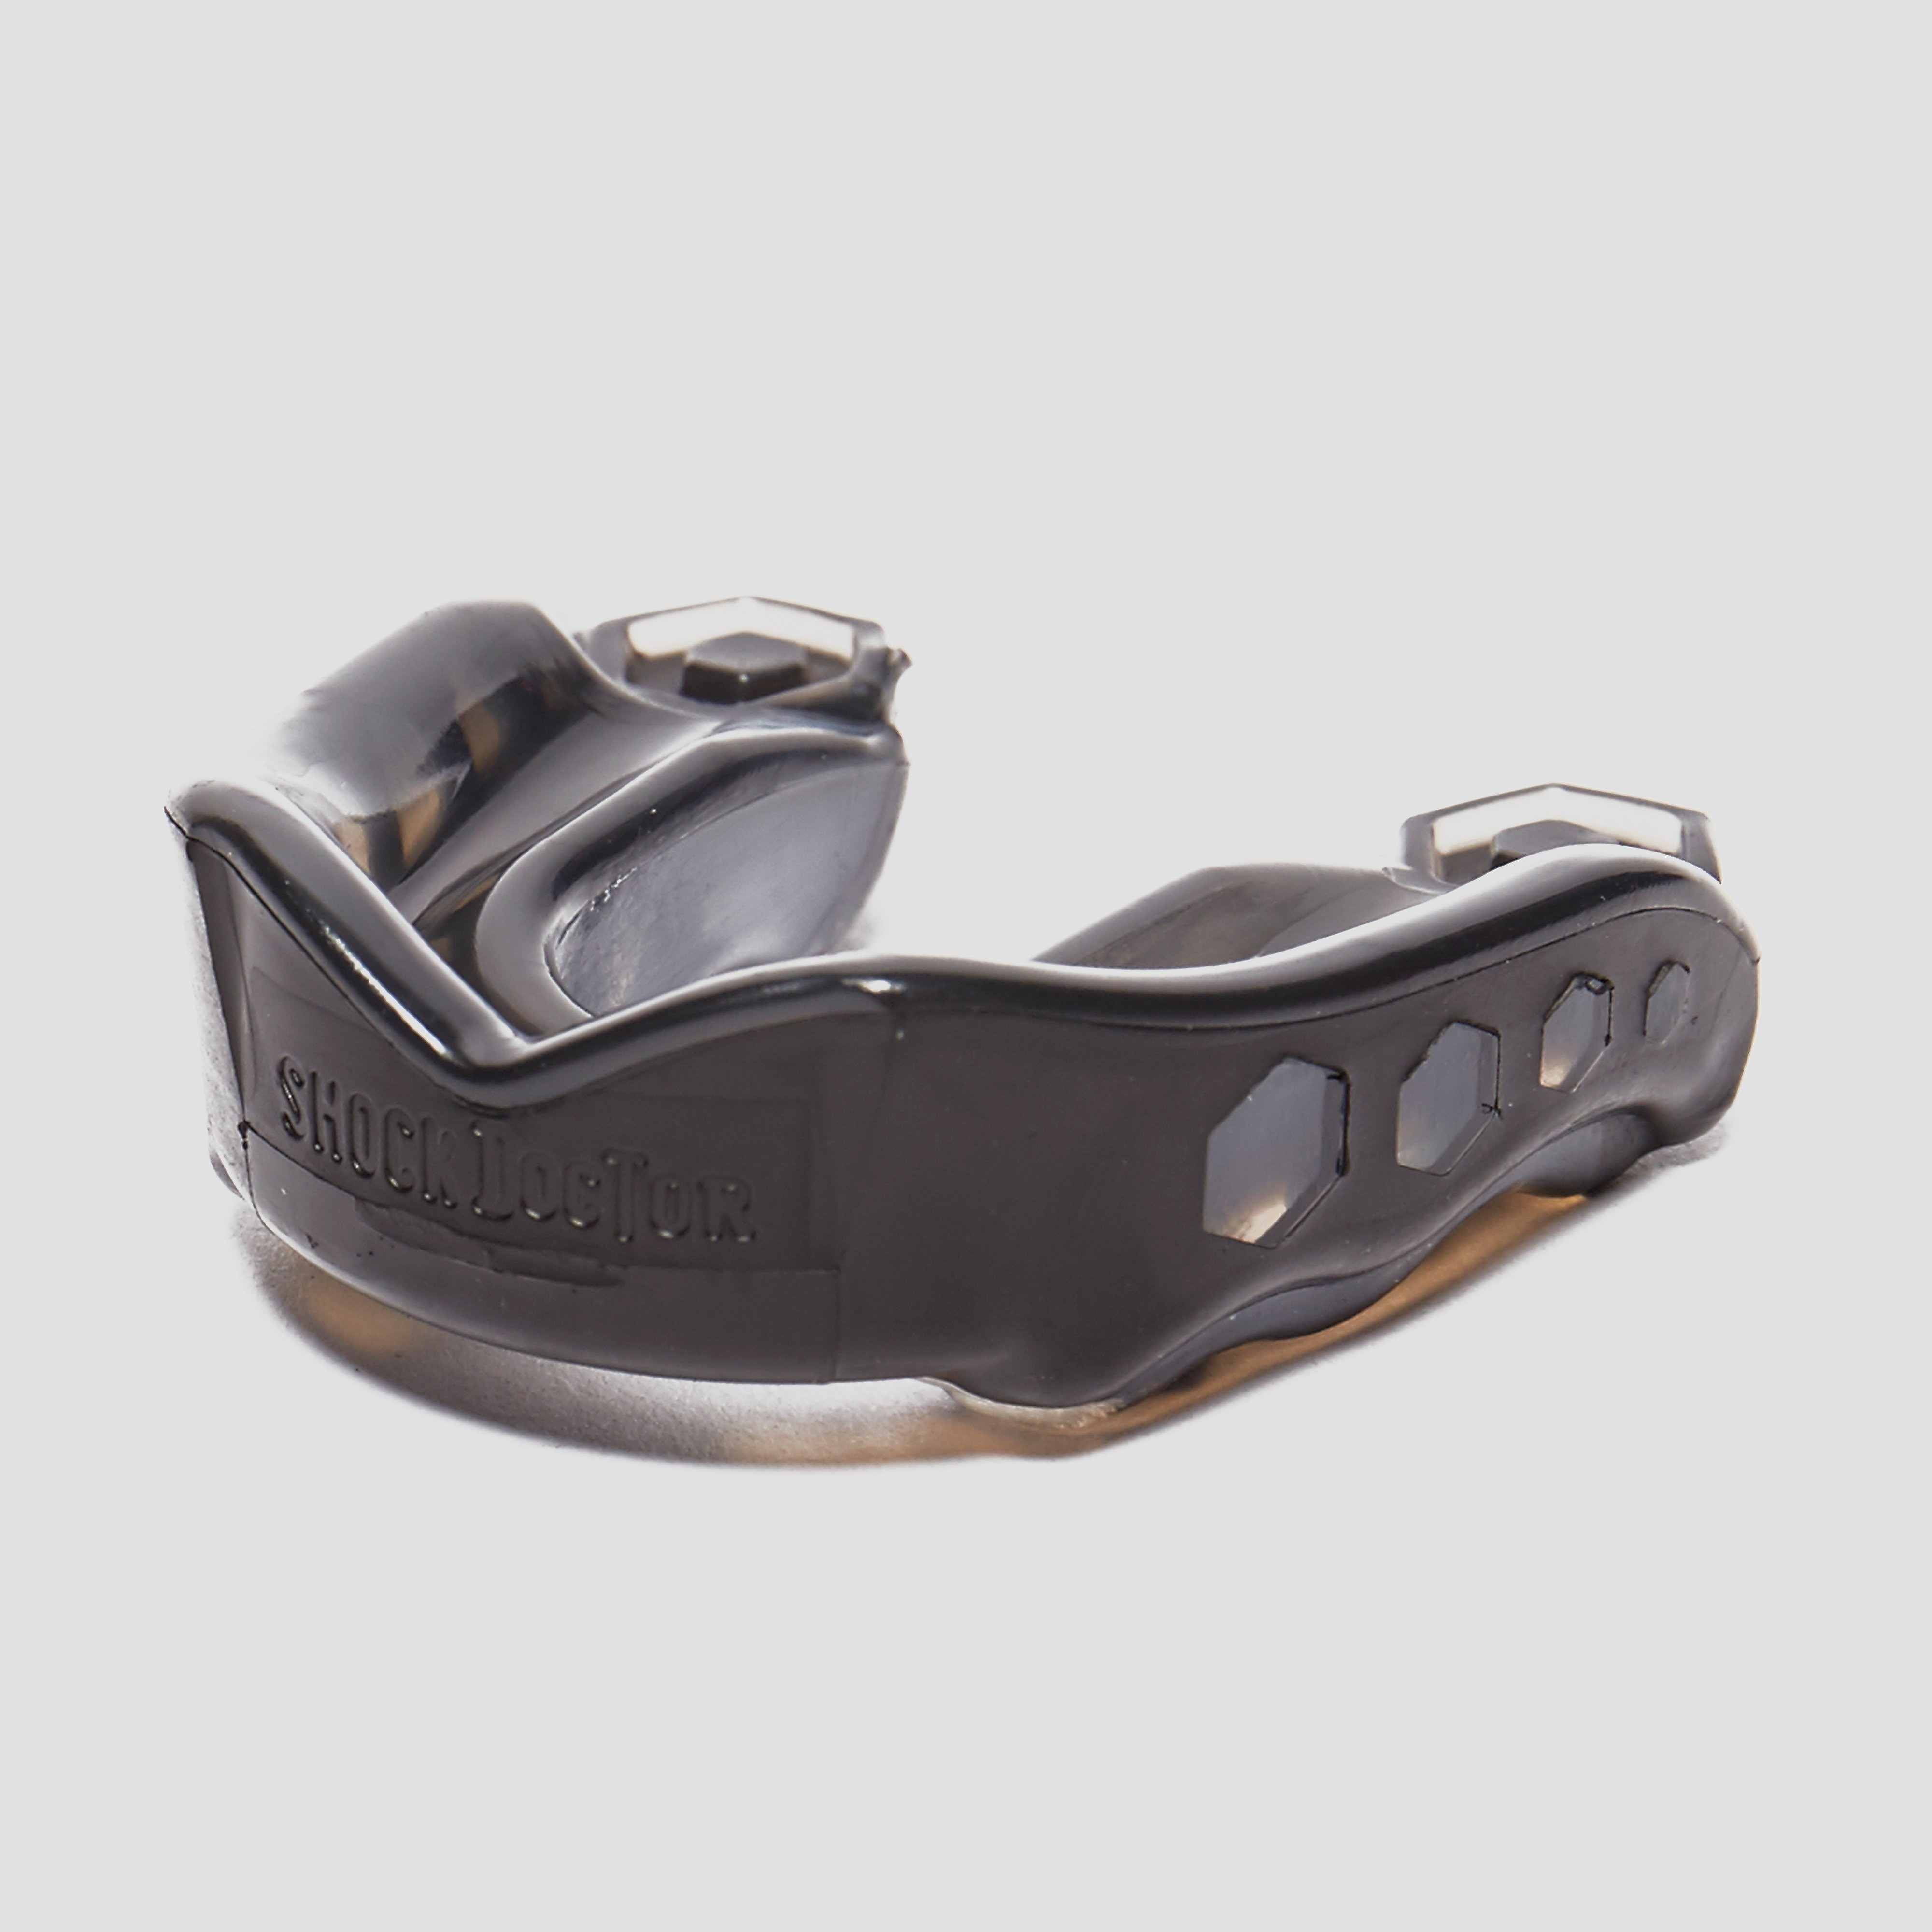 Shock Doctor Gel Max Adult Mouthguard